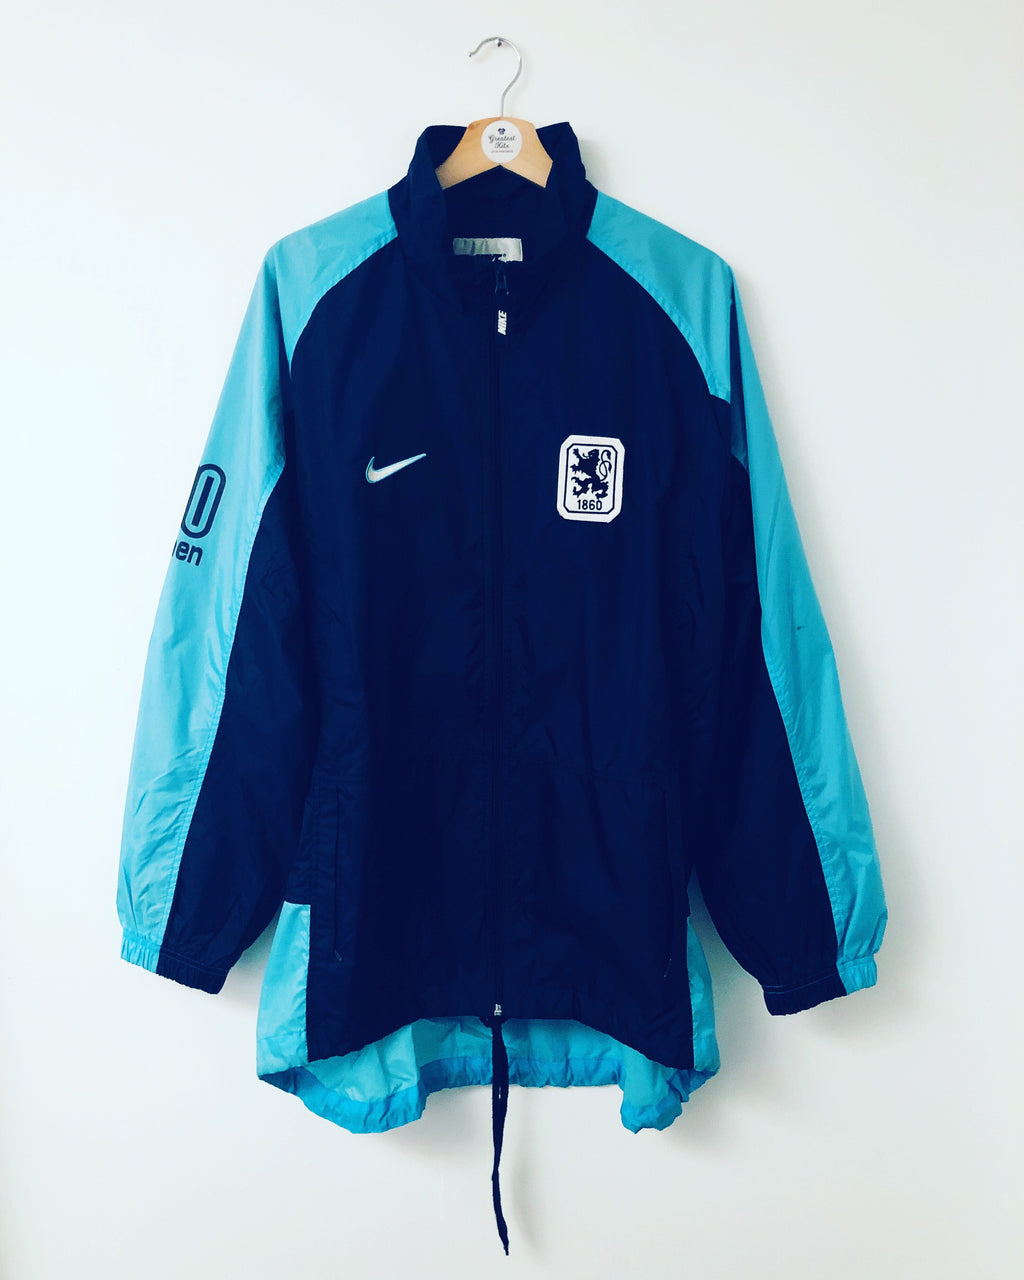 1997/98 1860 Munich Training Jacket (XL)